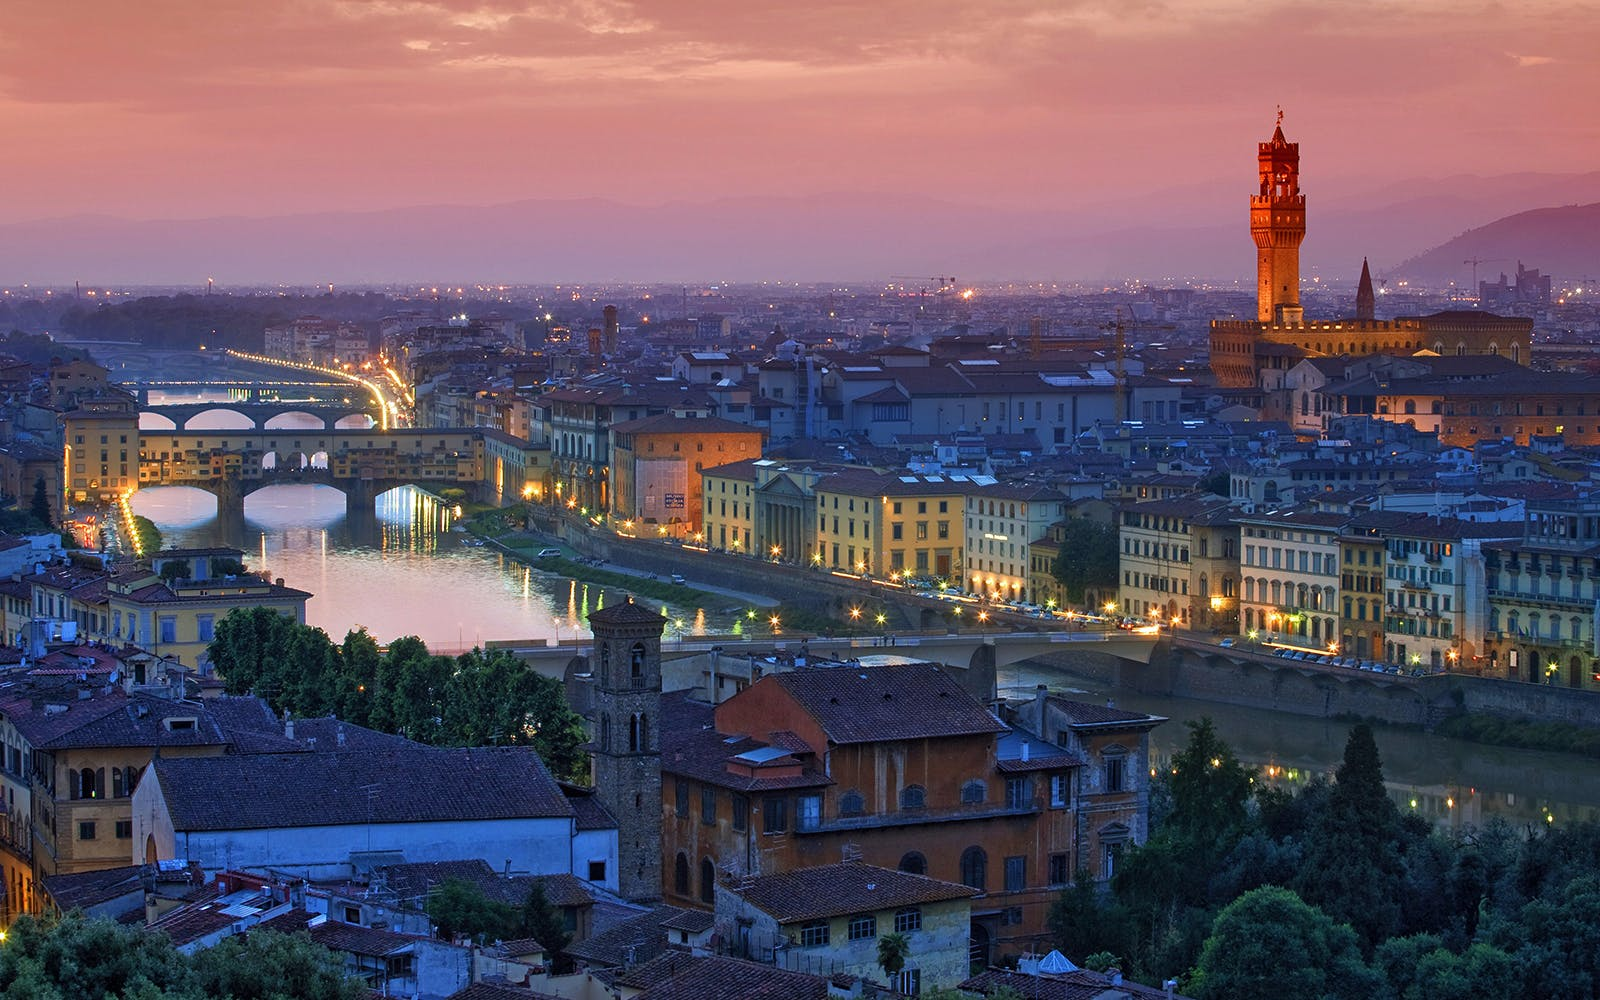 Full Day Tour of Florence by High-Speed Train